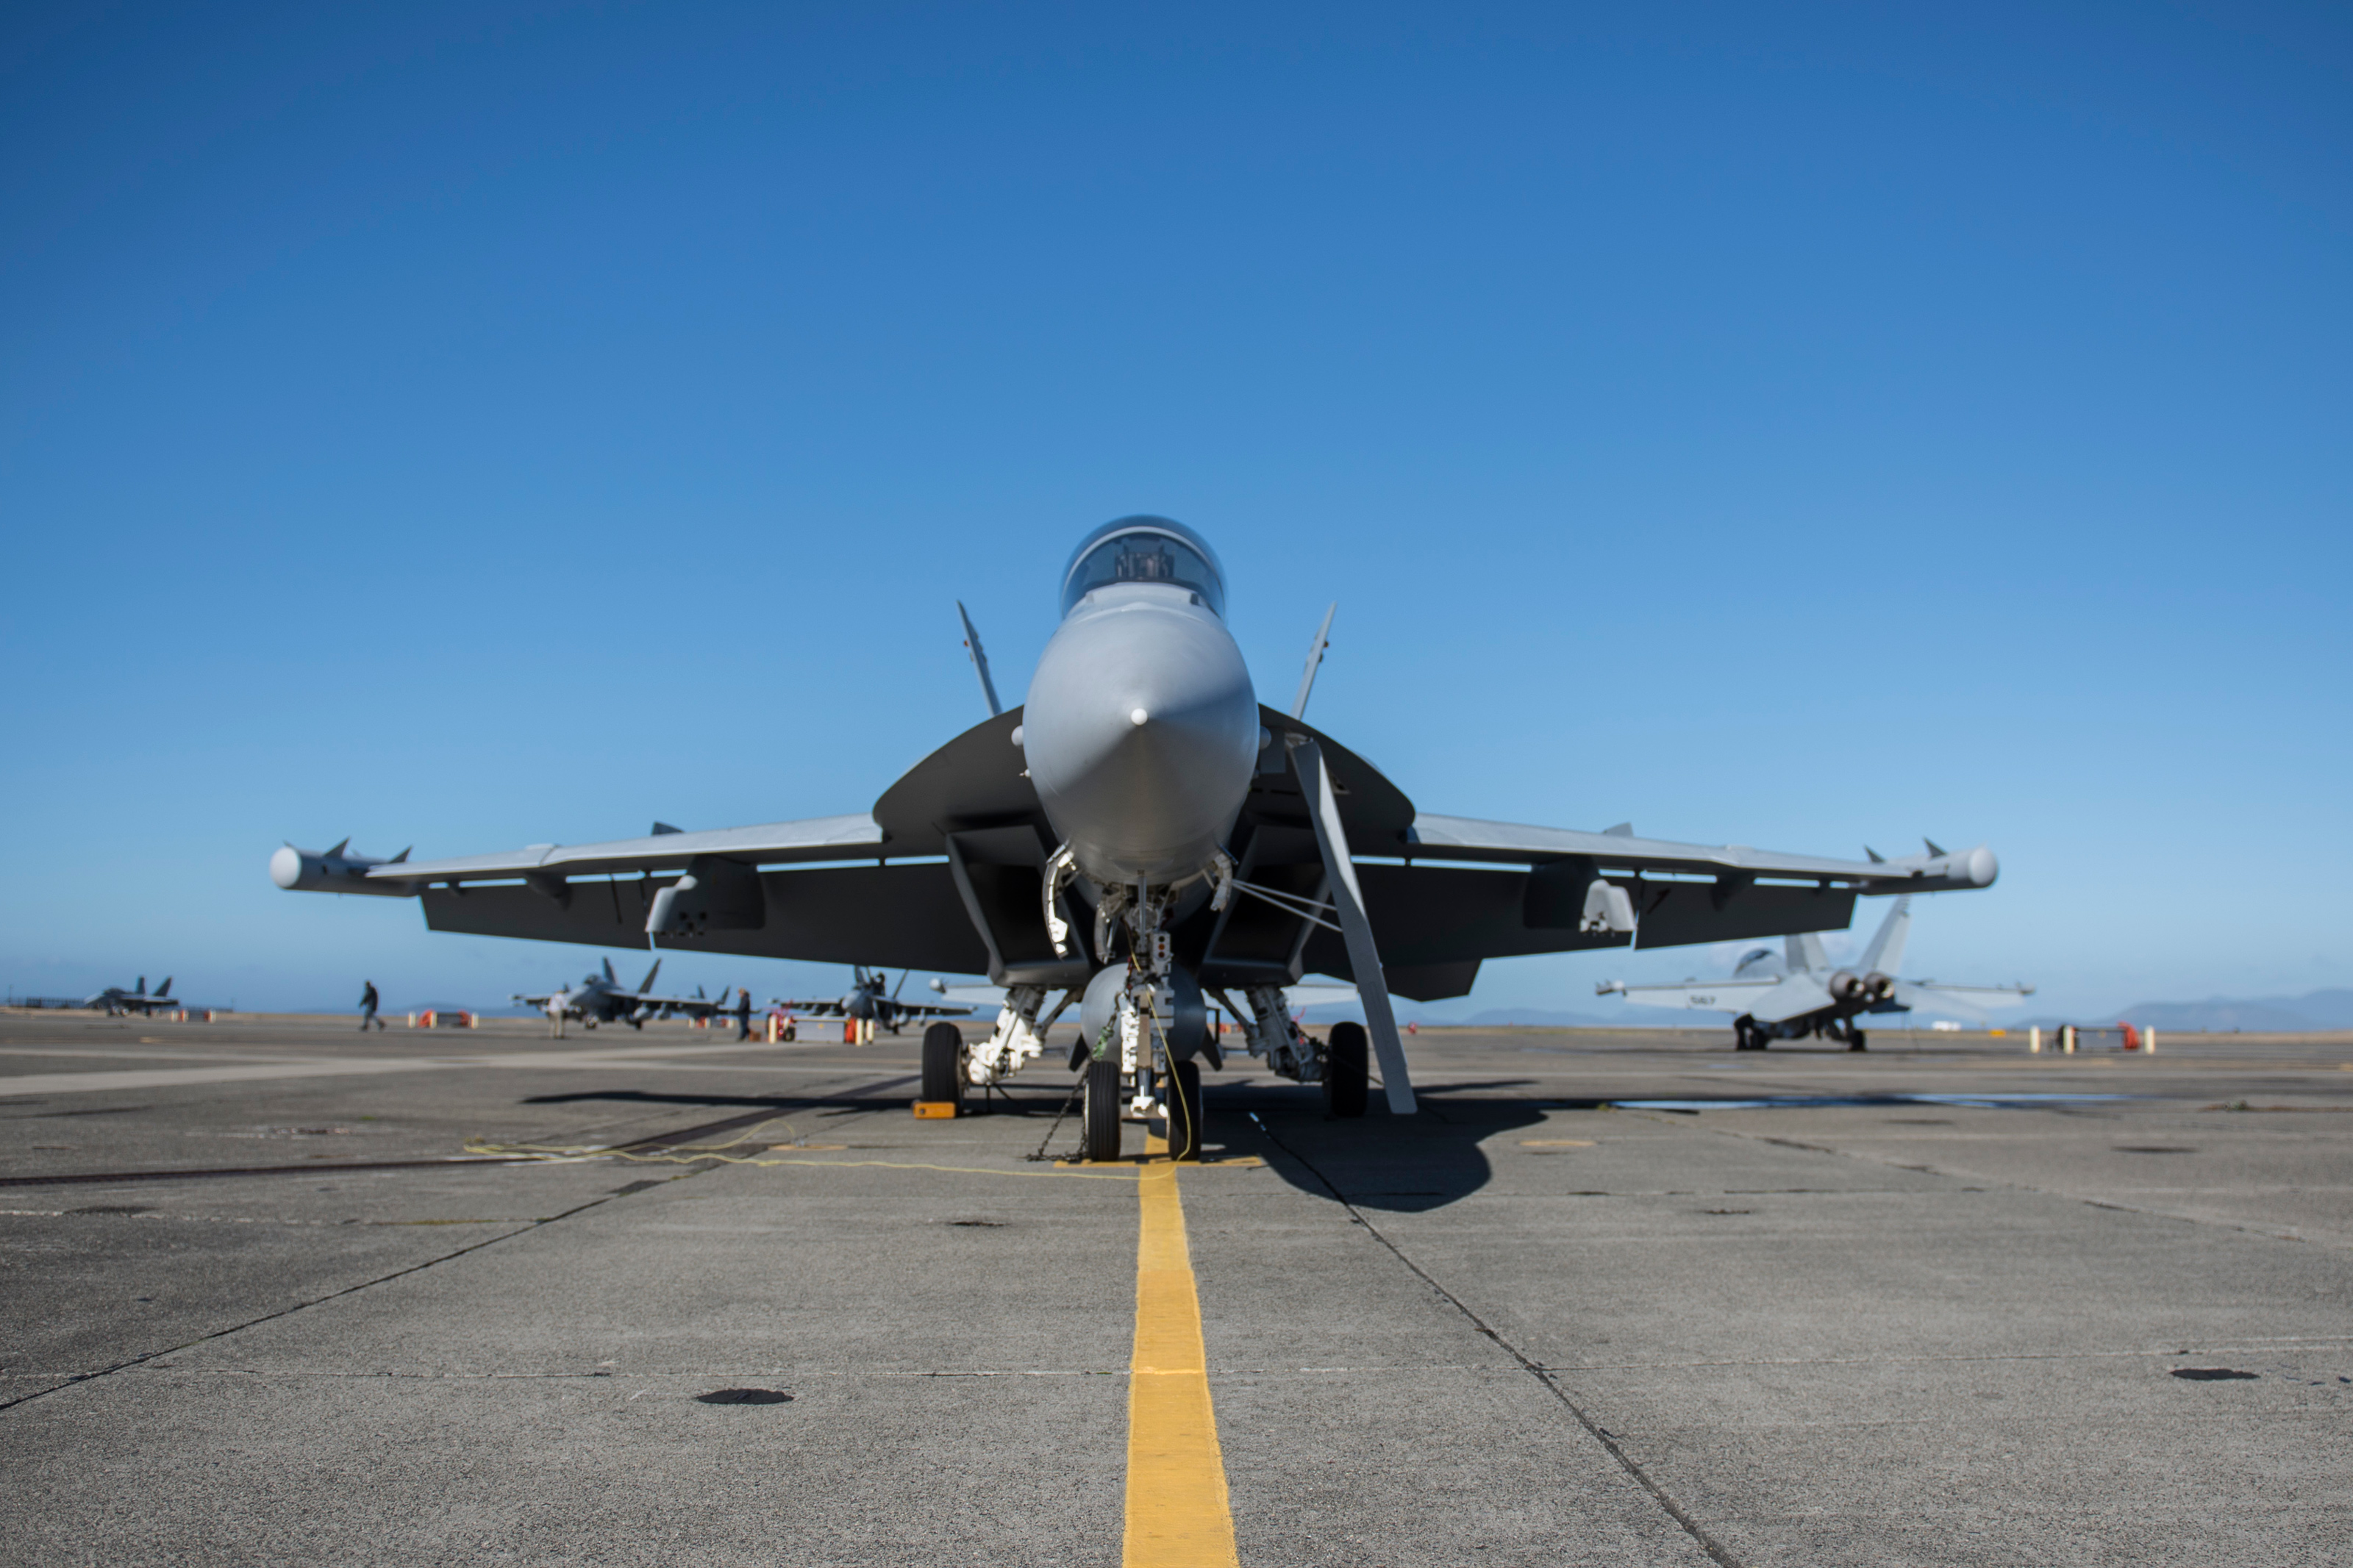 NAS Whidbey Island Jet Noise To Be Monitored